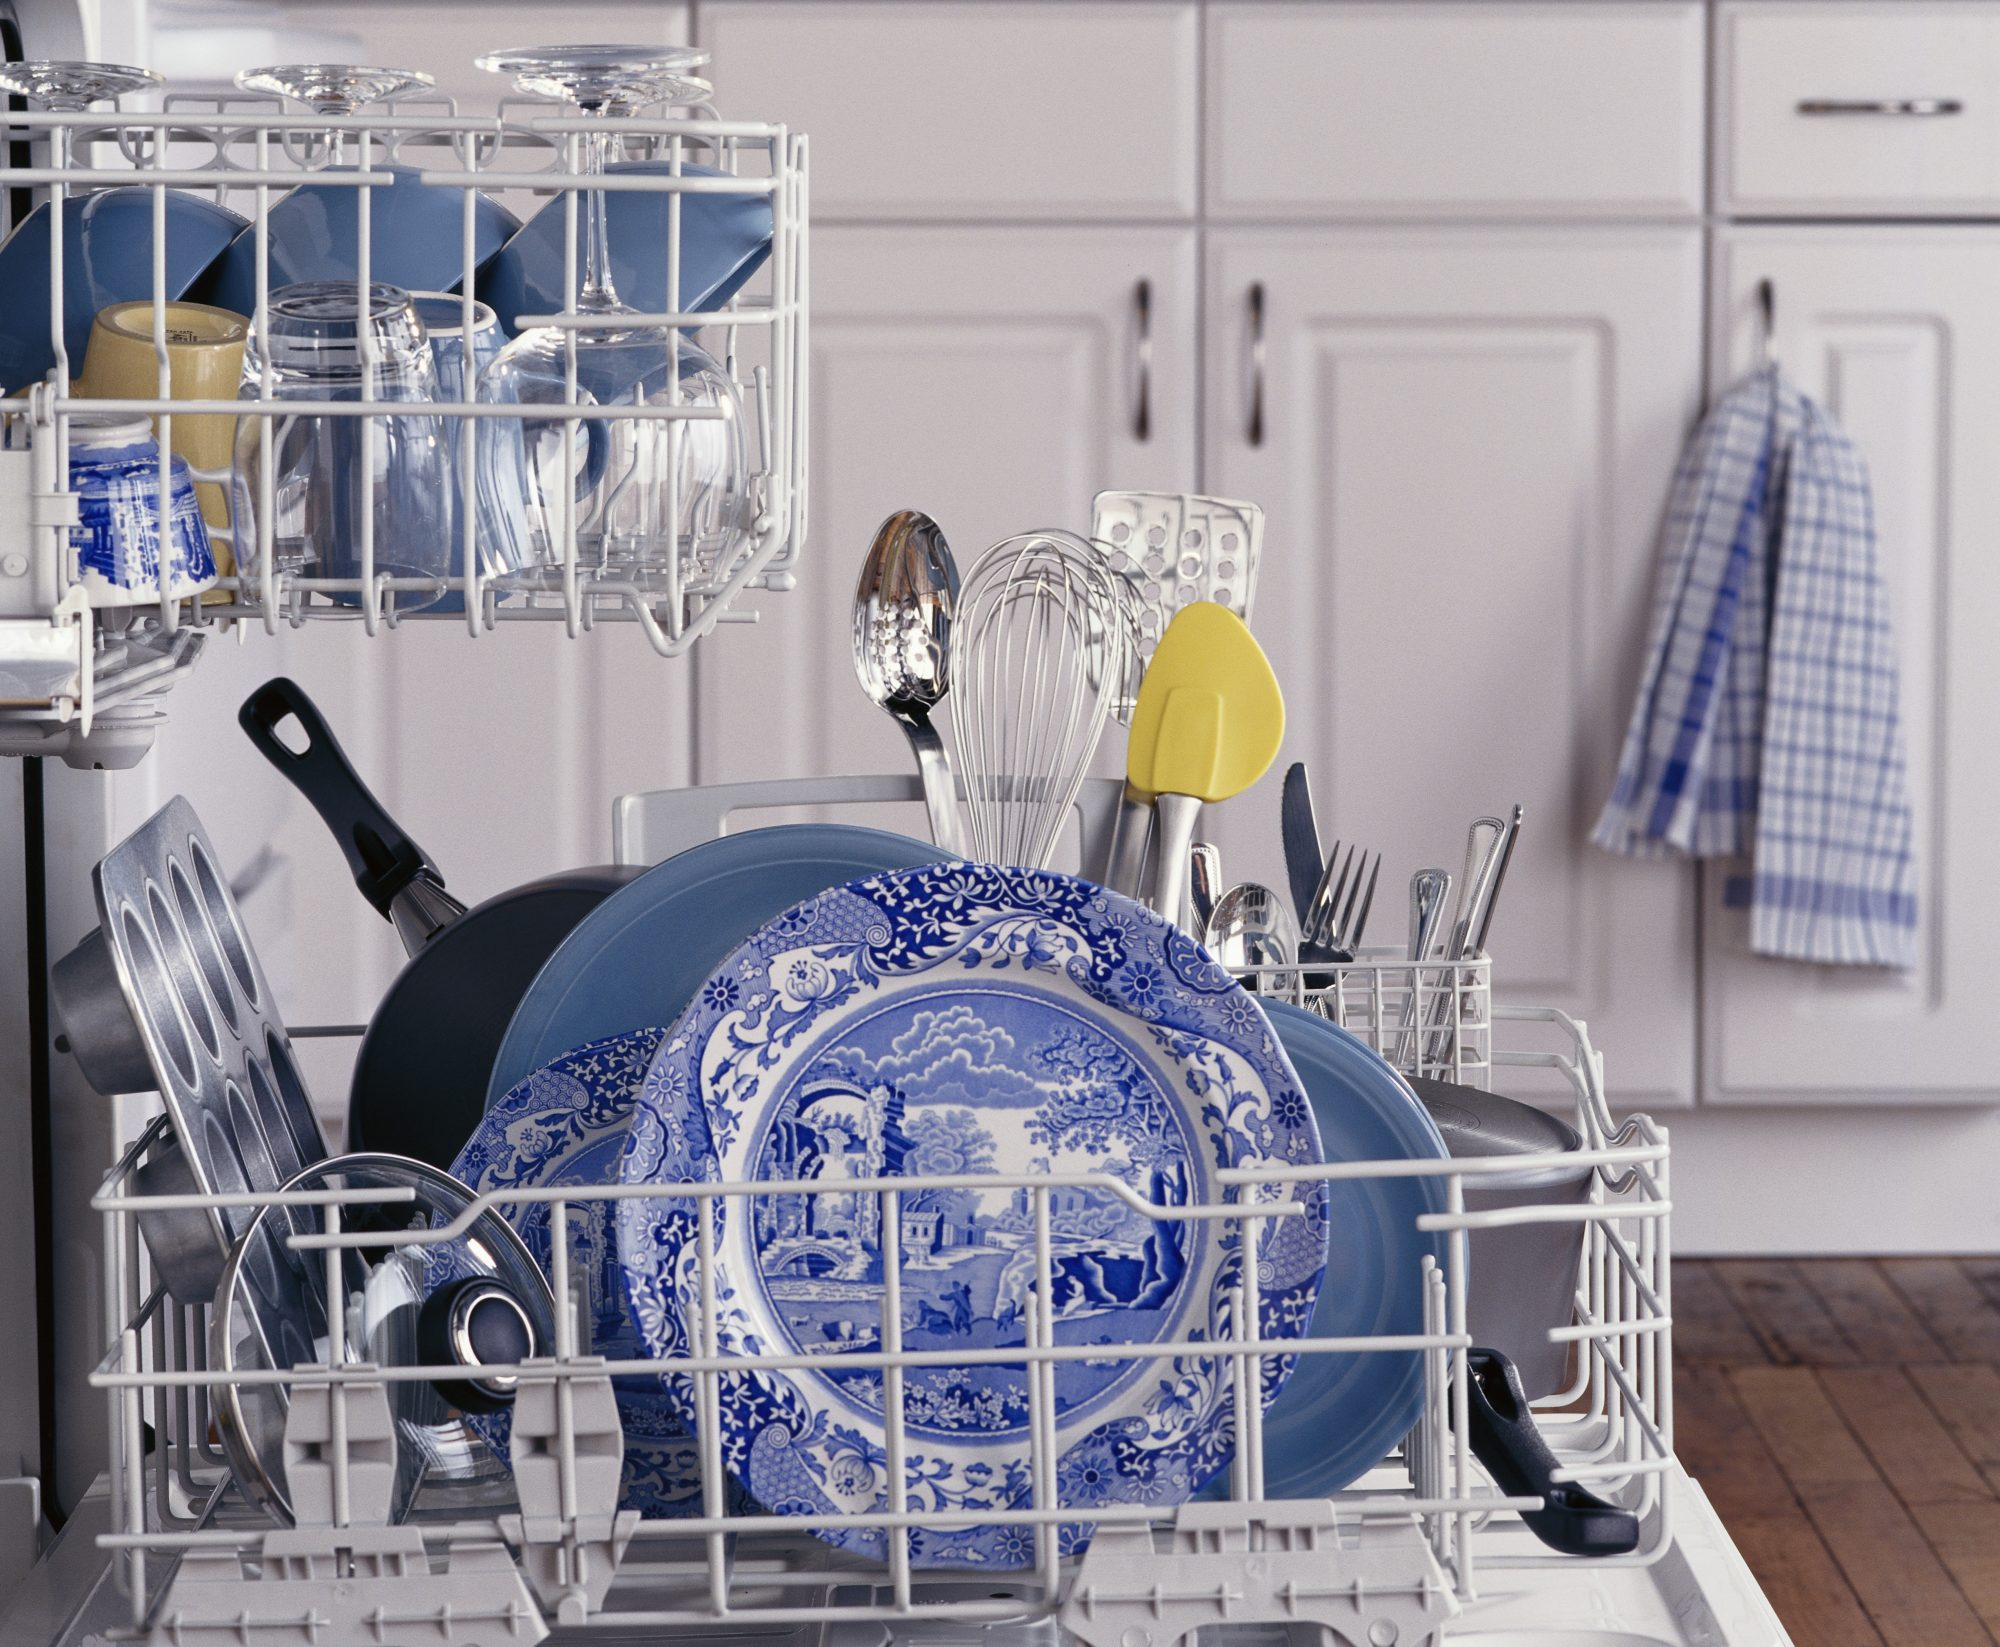 Dishwasher with blue and white dishes